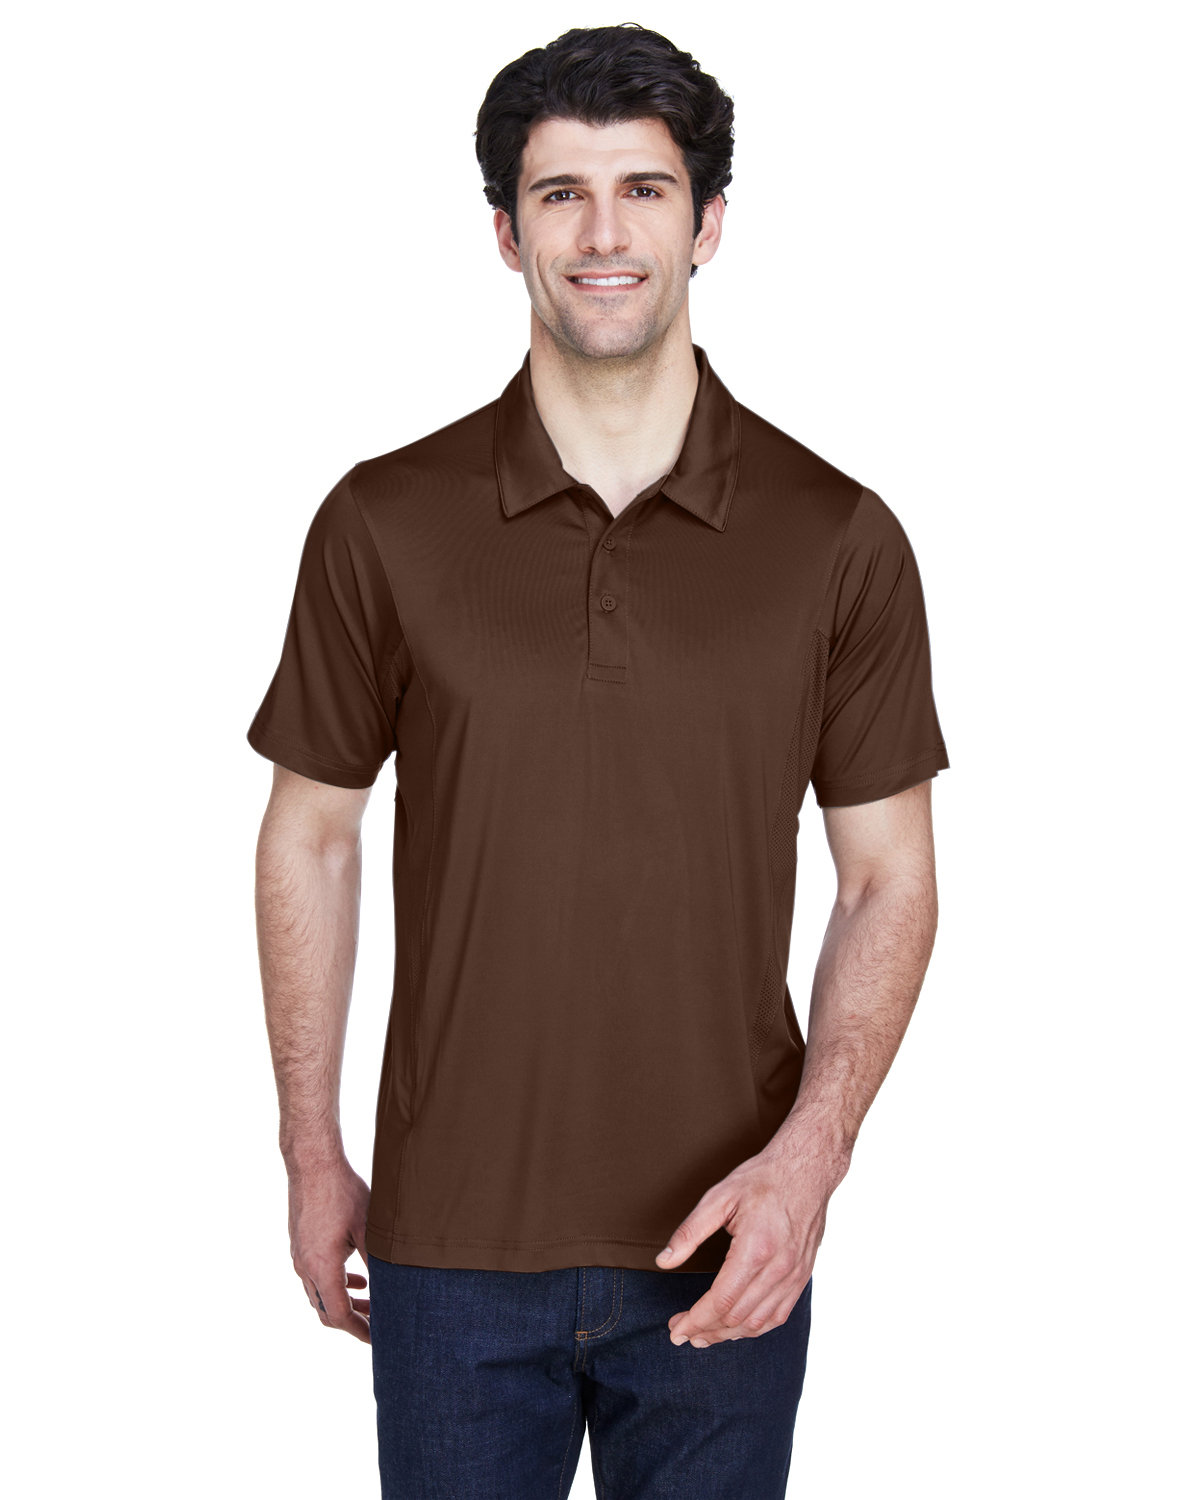 Team 365 Men's Charger Performance Polo SPORT DARK BROWN